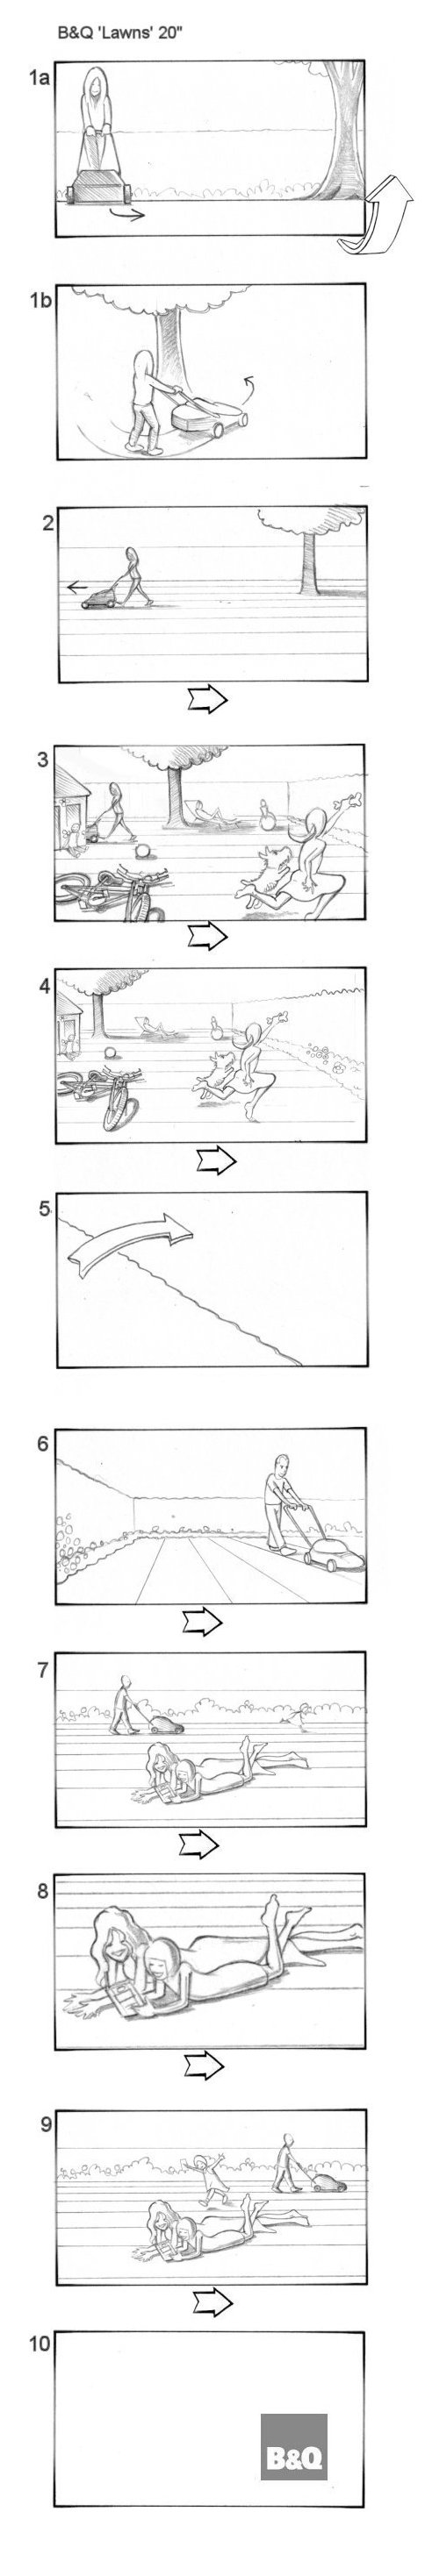 B&Q SUMMER CAMPAIGN STORYBOARDS BY ANDY SPARROW